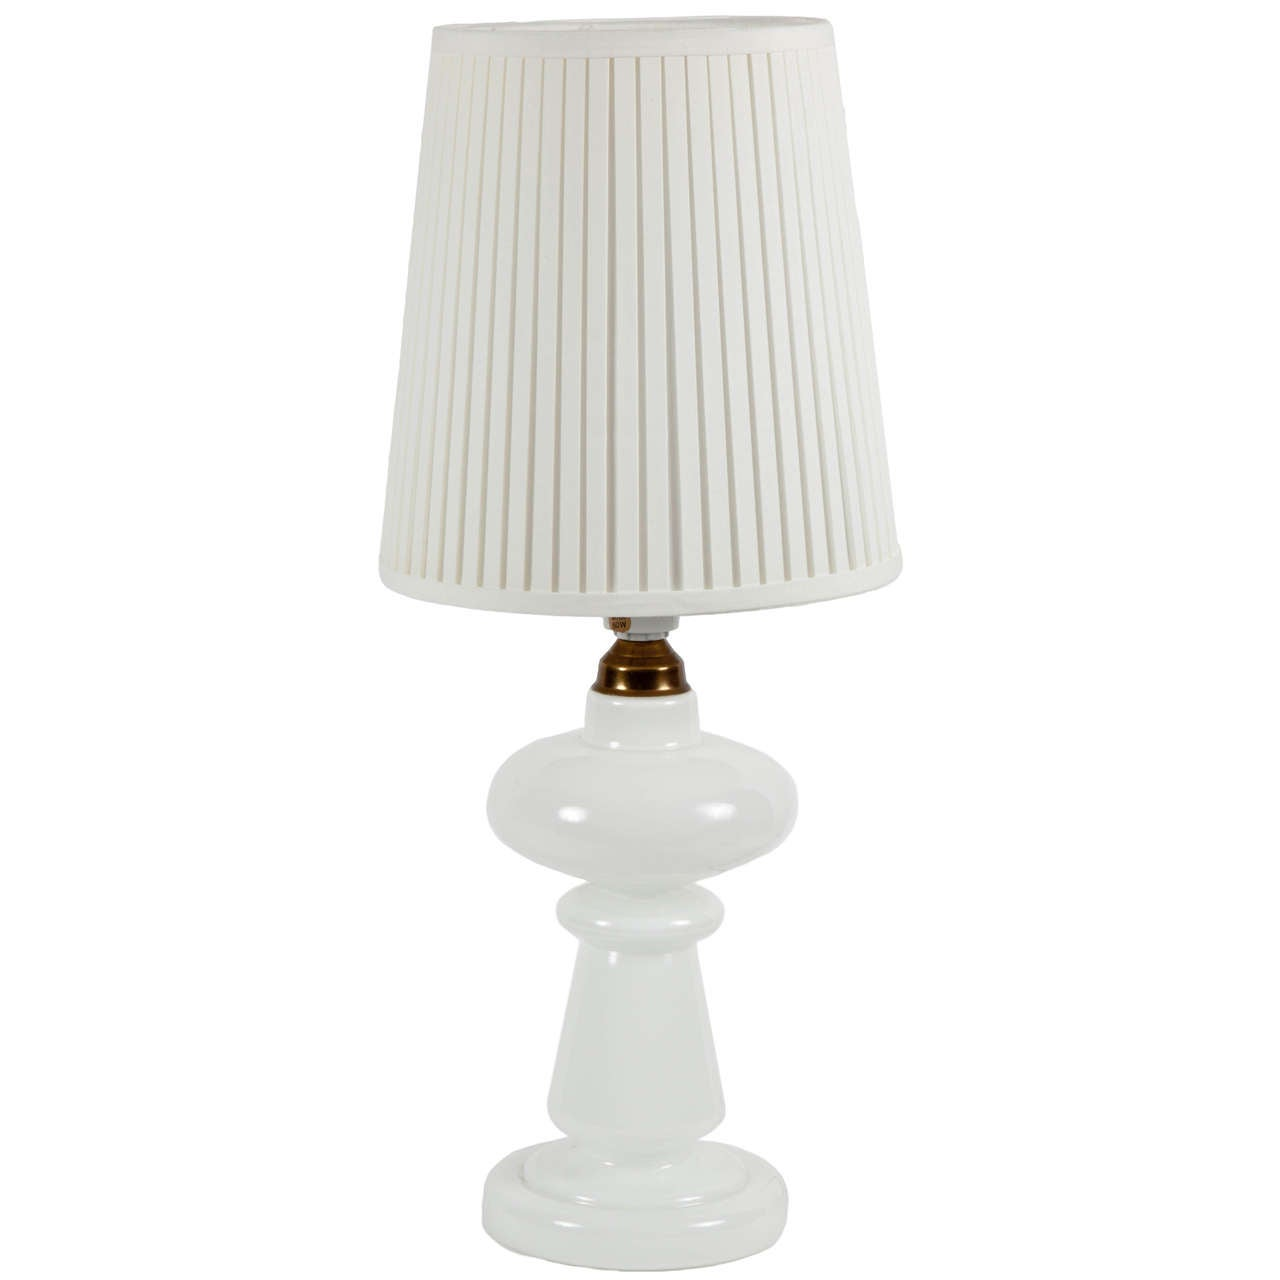 Vintage 1960s Glass White Table Lamp For Sale At 1stdibs